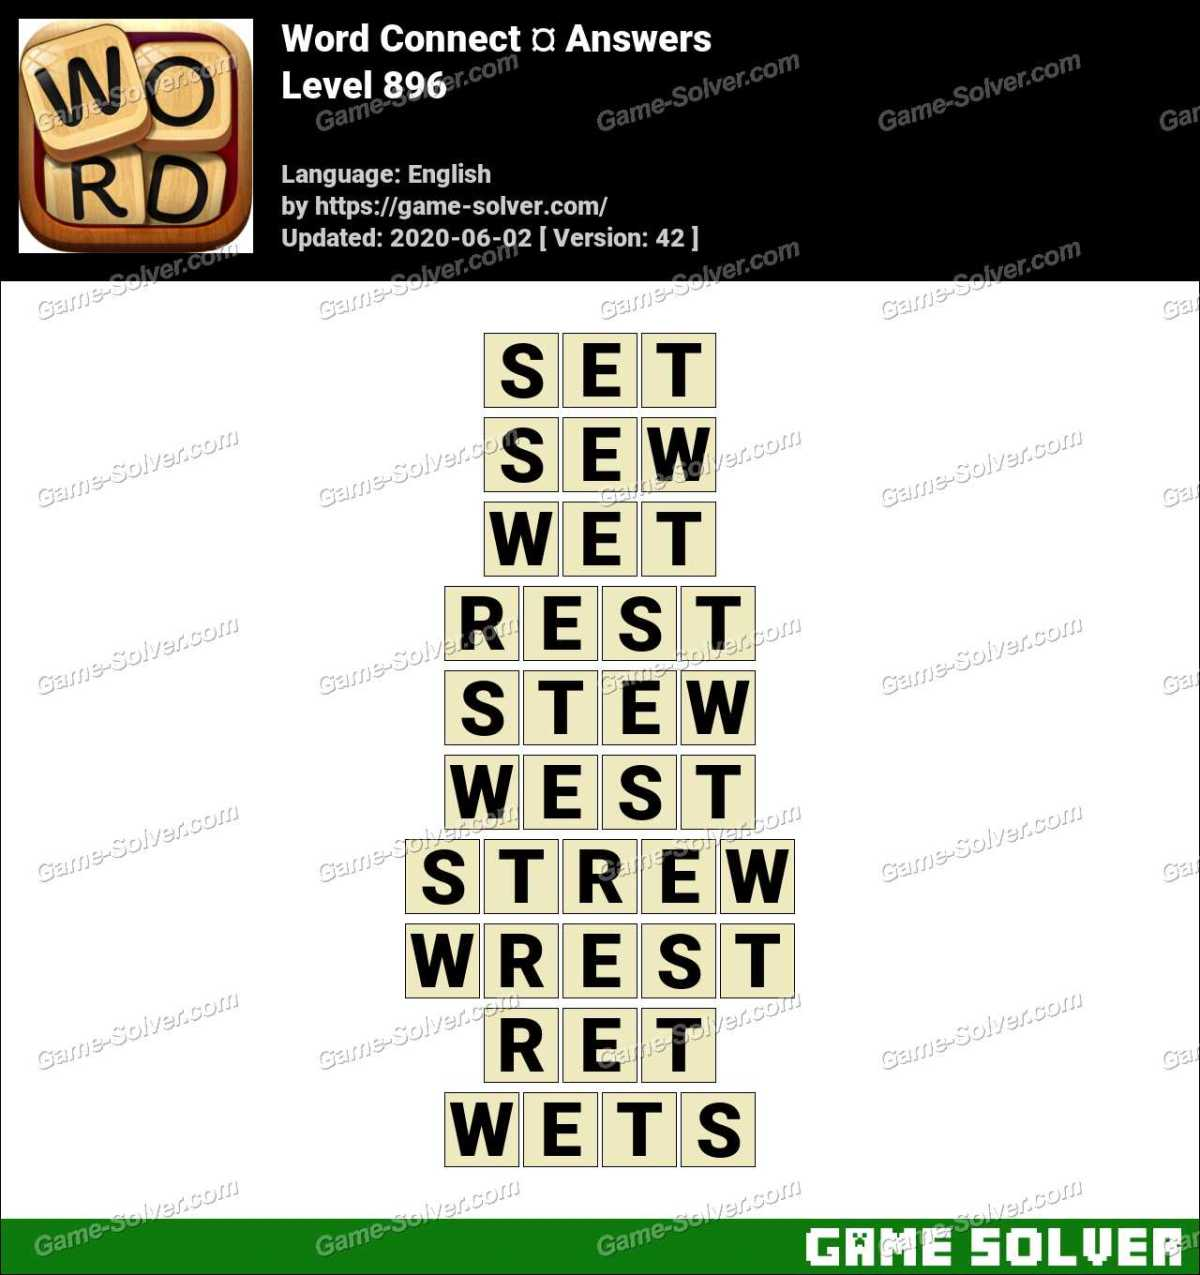 Word Connect Level 896 Answers